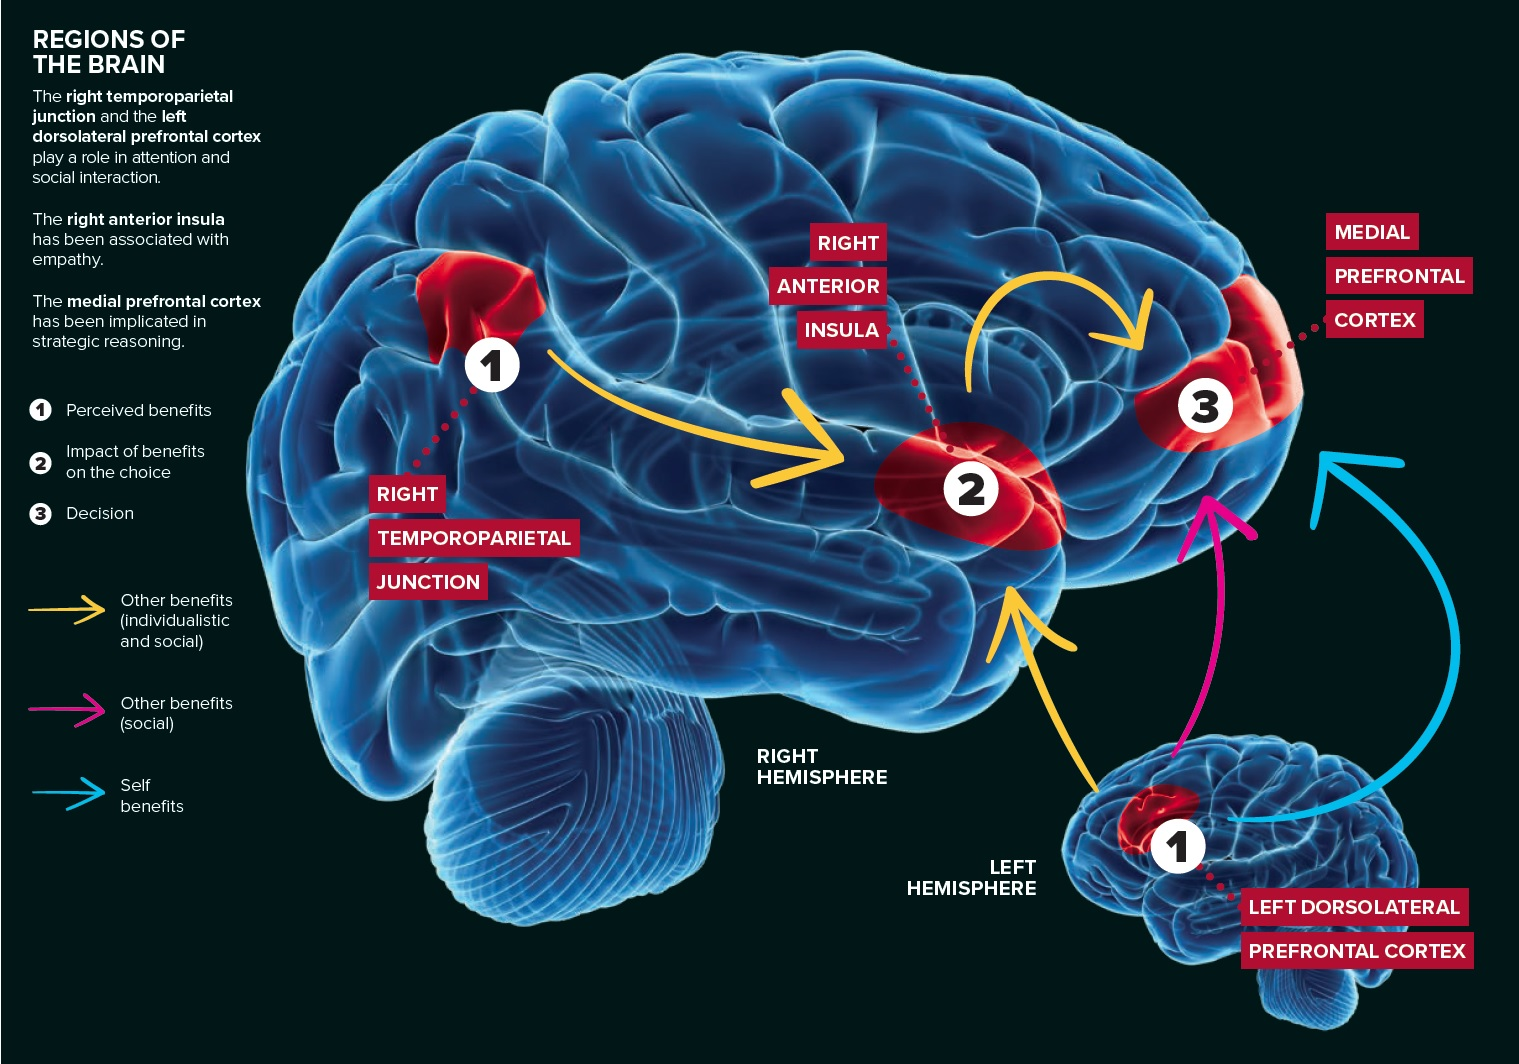 image of regions of the brain